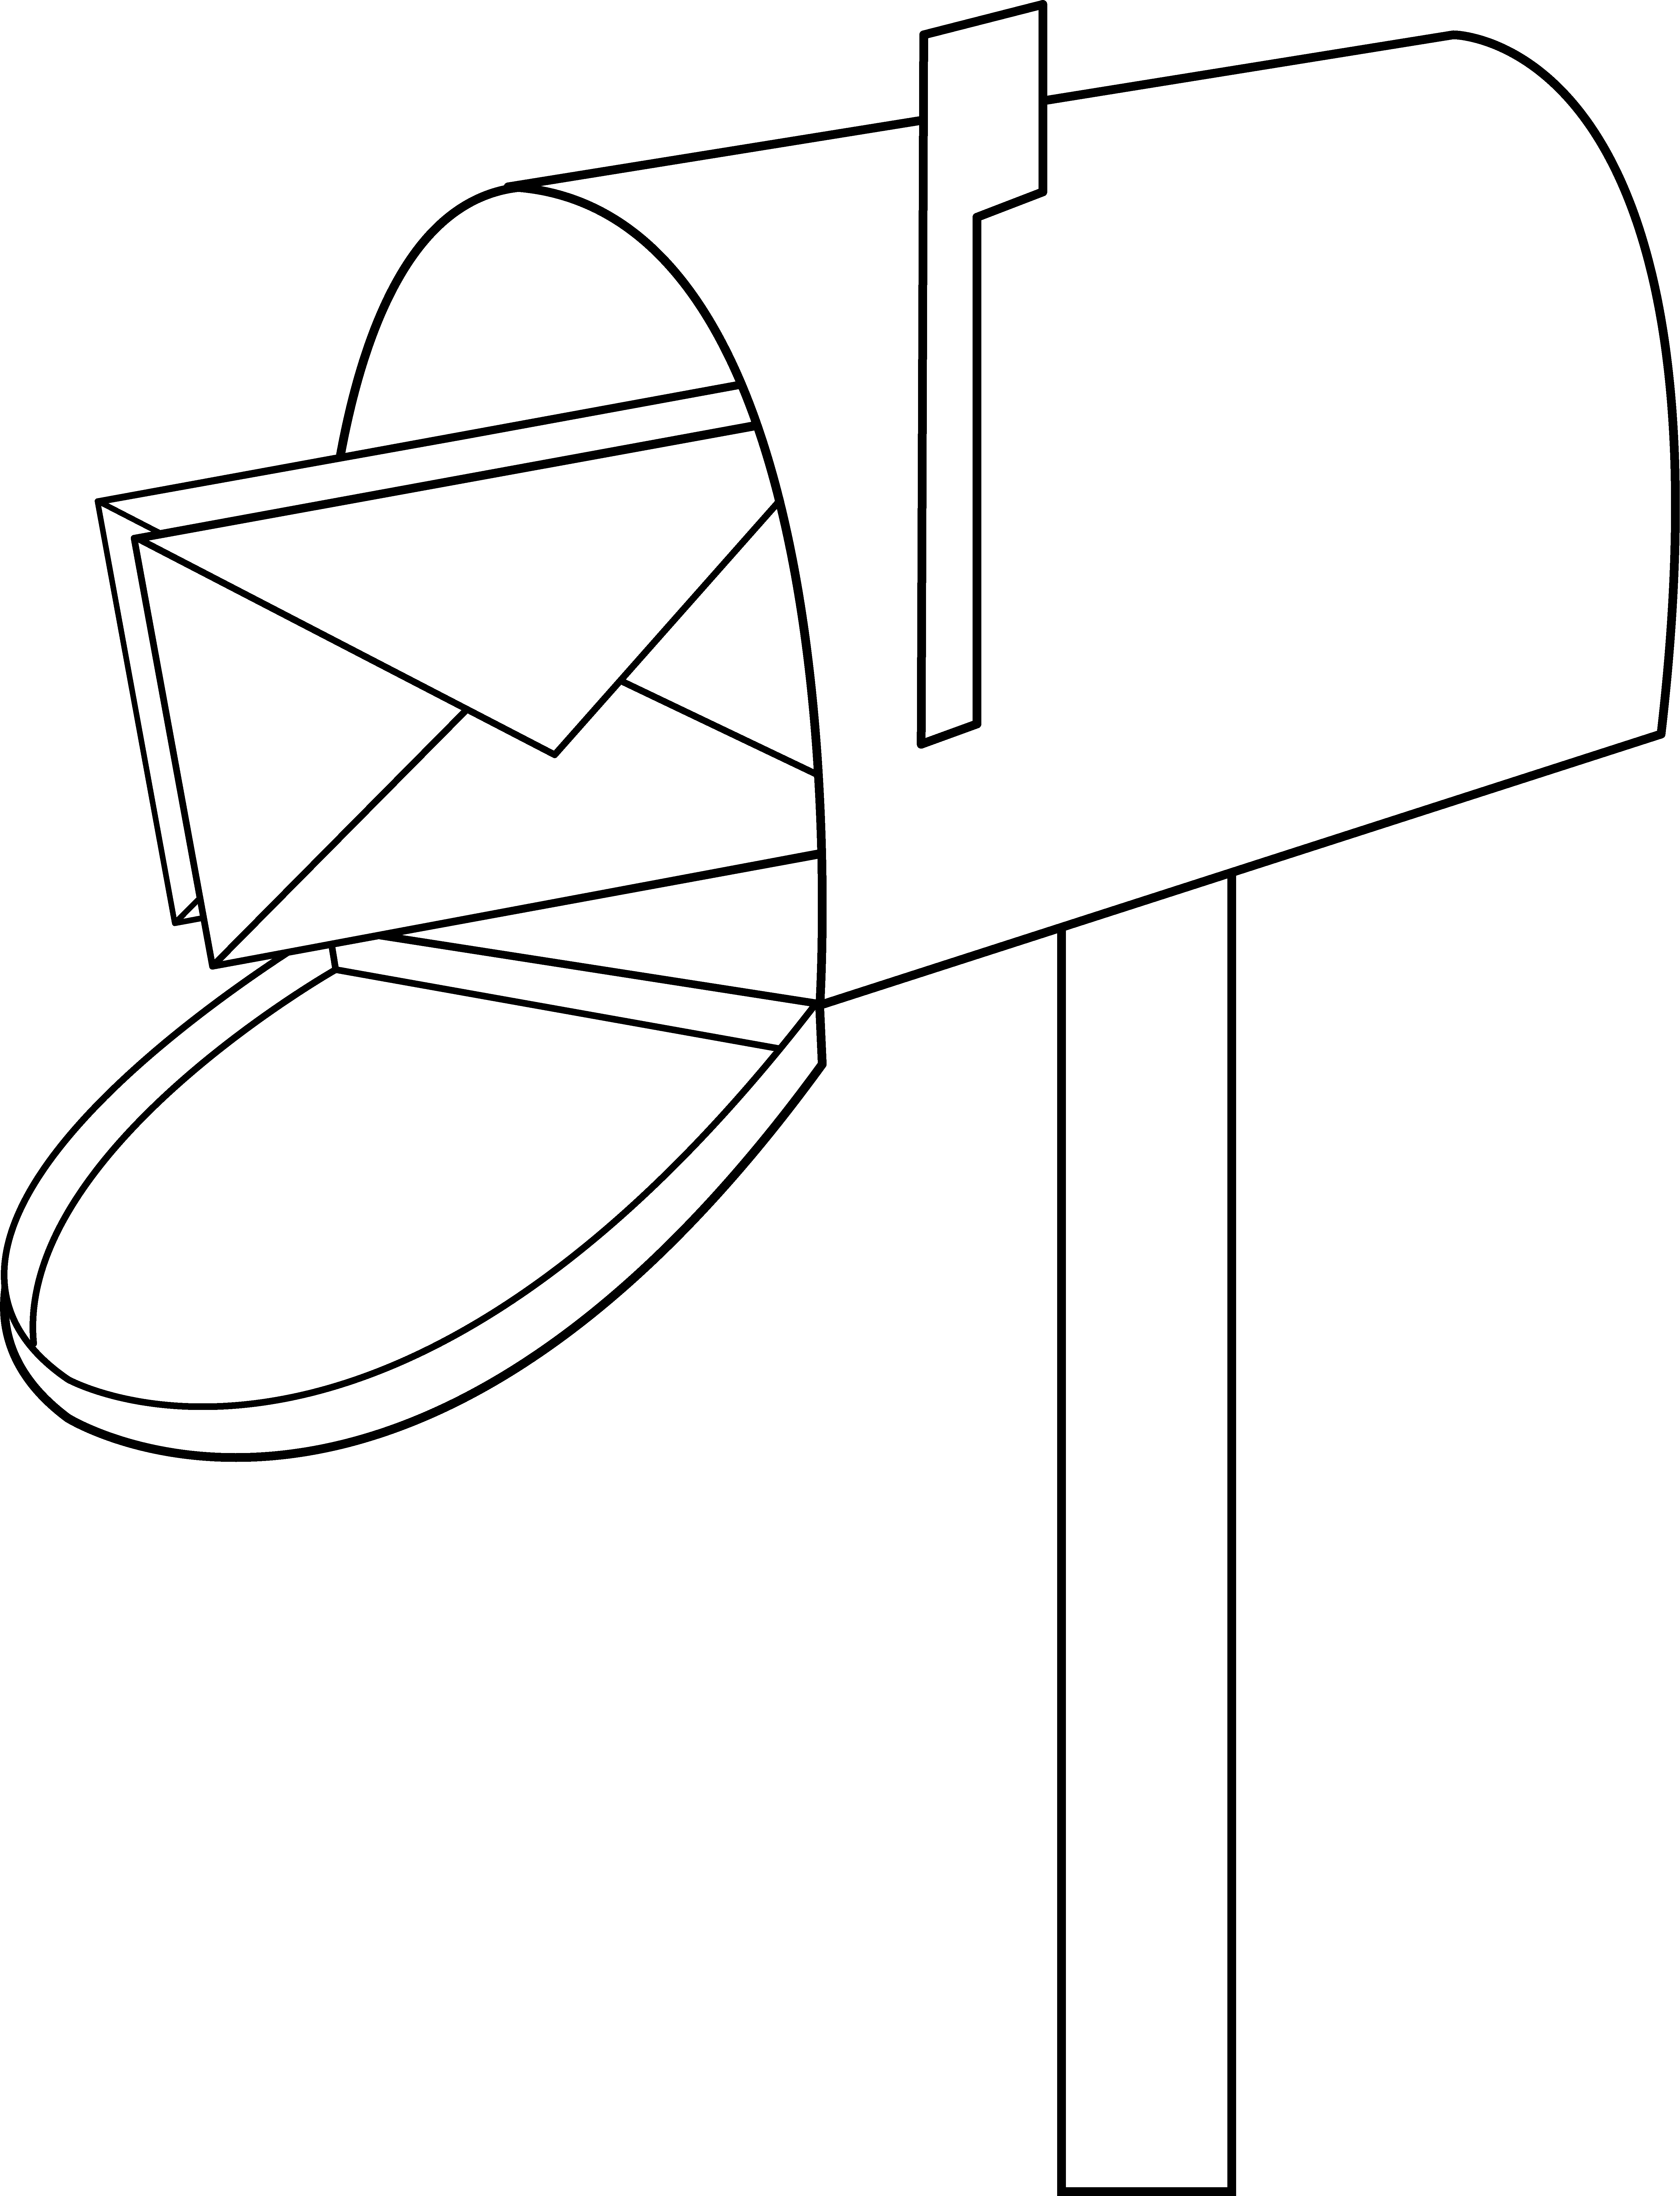 Pics of mail cartoon. Mailbox clipart